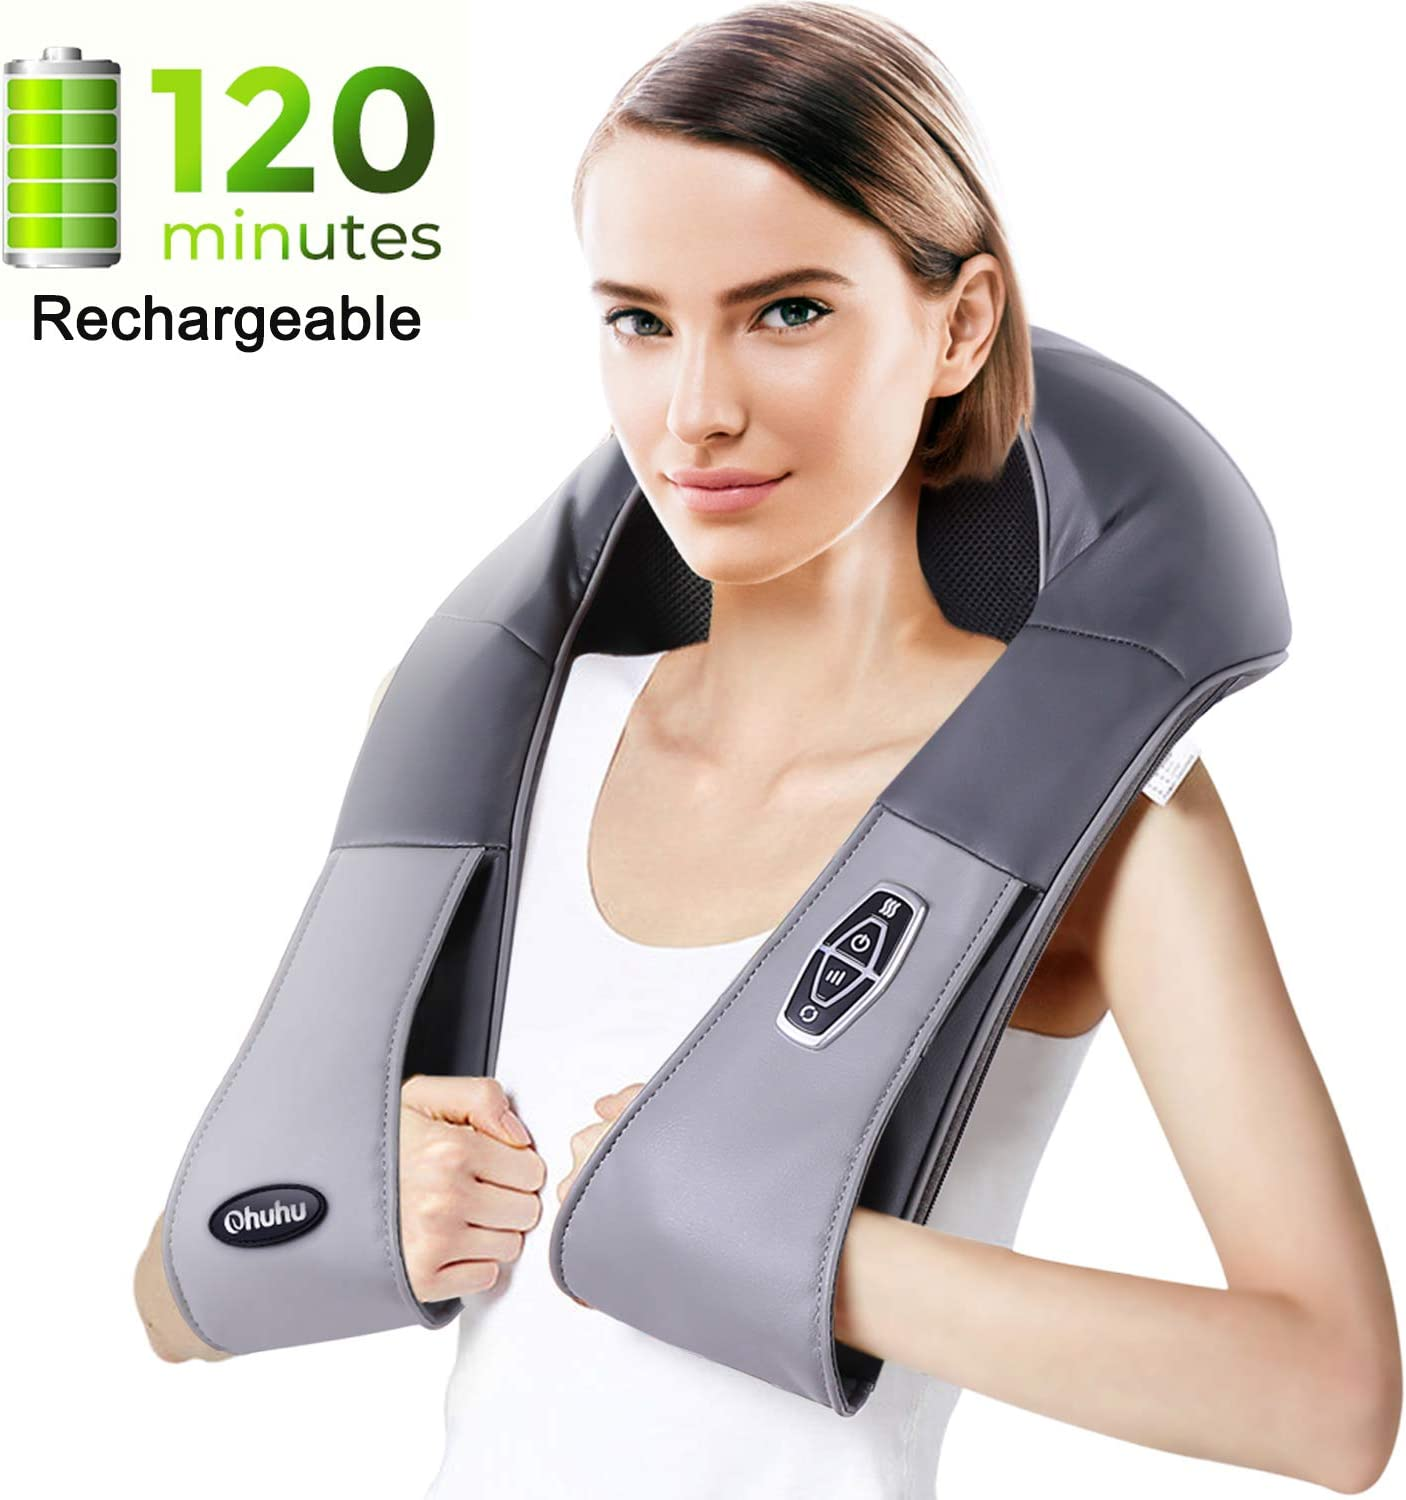 Cordless Rechargeable Shiatsu Back and Neck Massager with Heat, Ohuhu Electric Back Massage Pillow with 3D Kneading Deep Tissue for Foot, Legs, Full Body Massage, Relieve Muscle Pain – Home Car Office